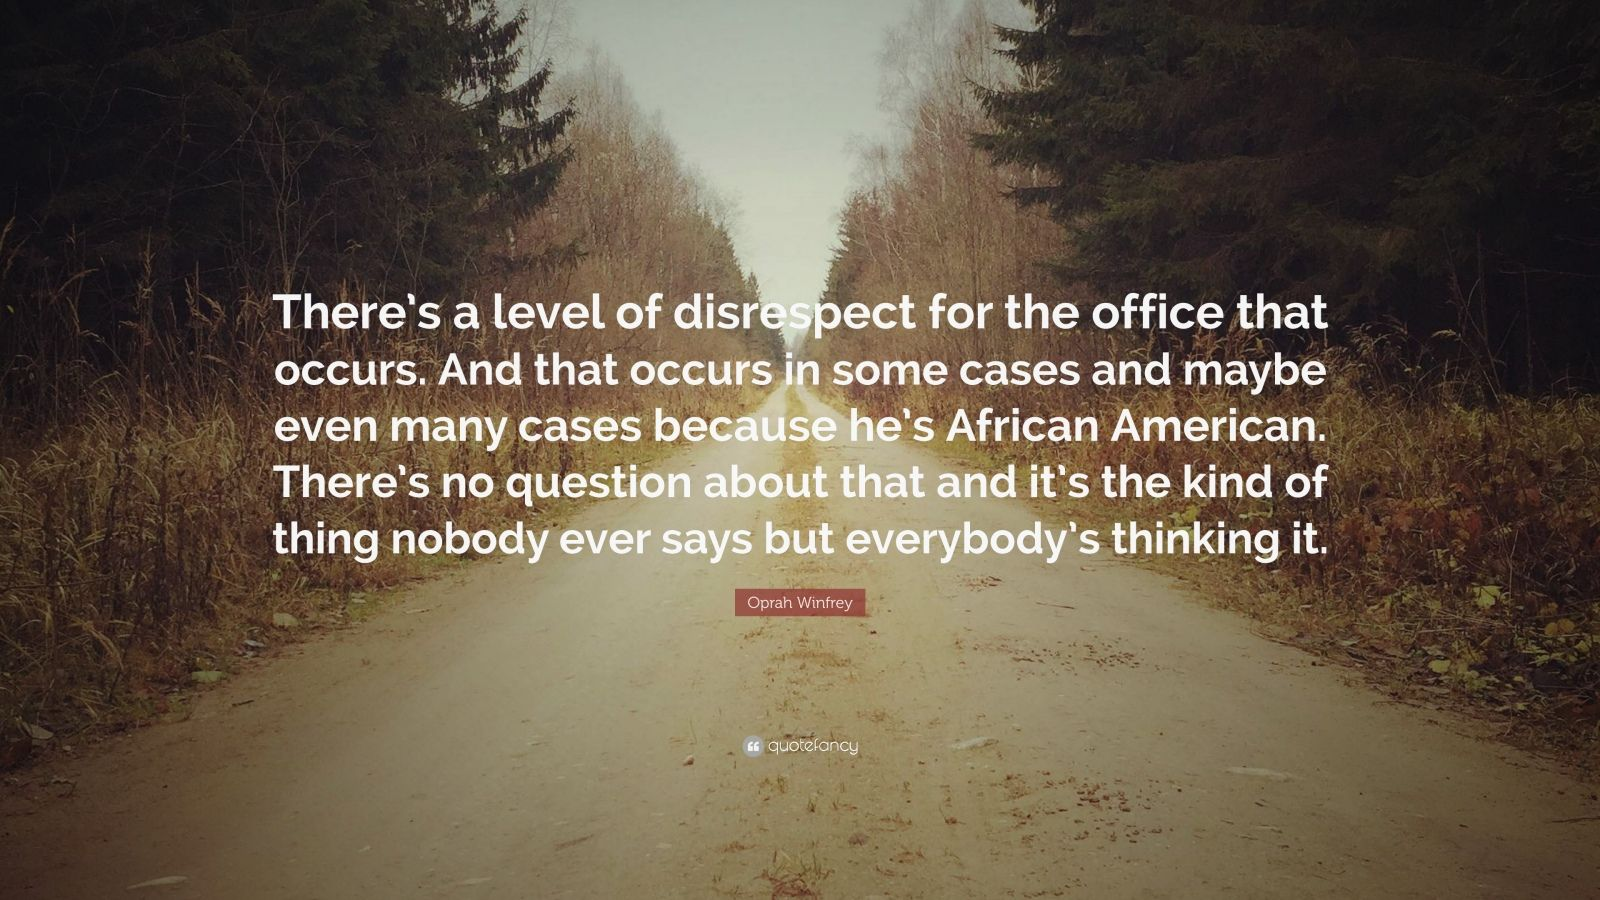 """Oprah Winfrey Quote: """"There's a level of disrespect for the office that occurs. And that occurs in some cases and maybe even many cases because he's African American. There's no question about that and it's the kind of thing nobody ever says but everybody's thinking it."""""""